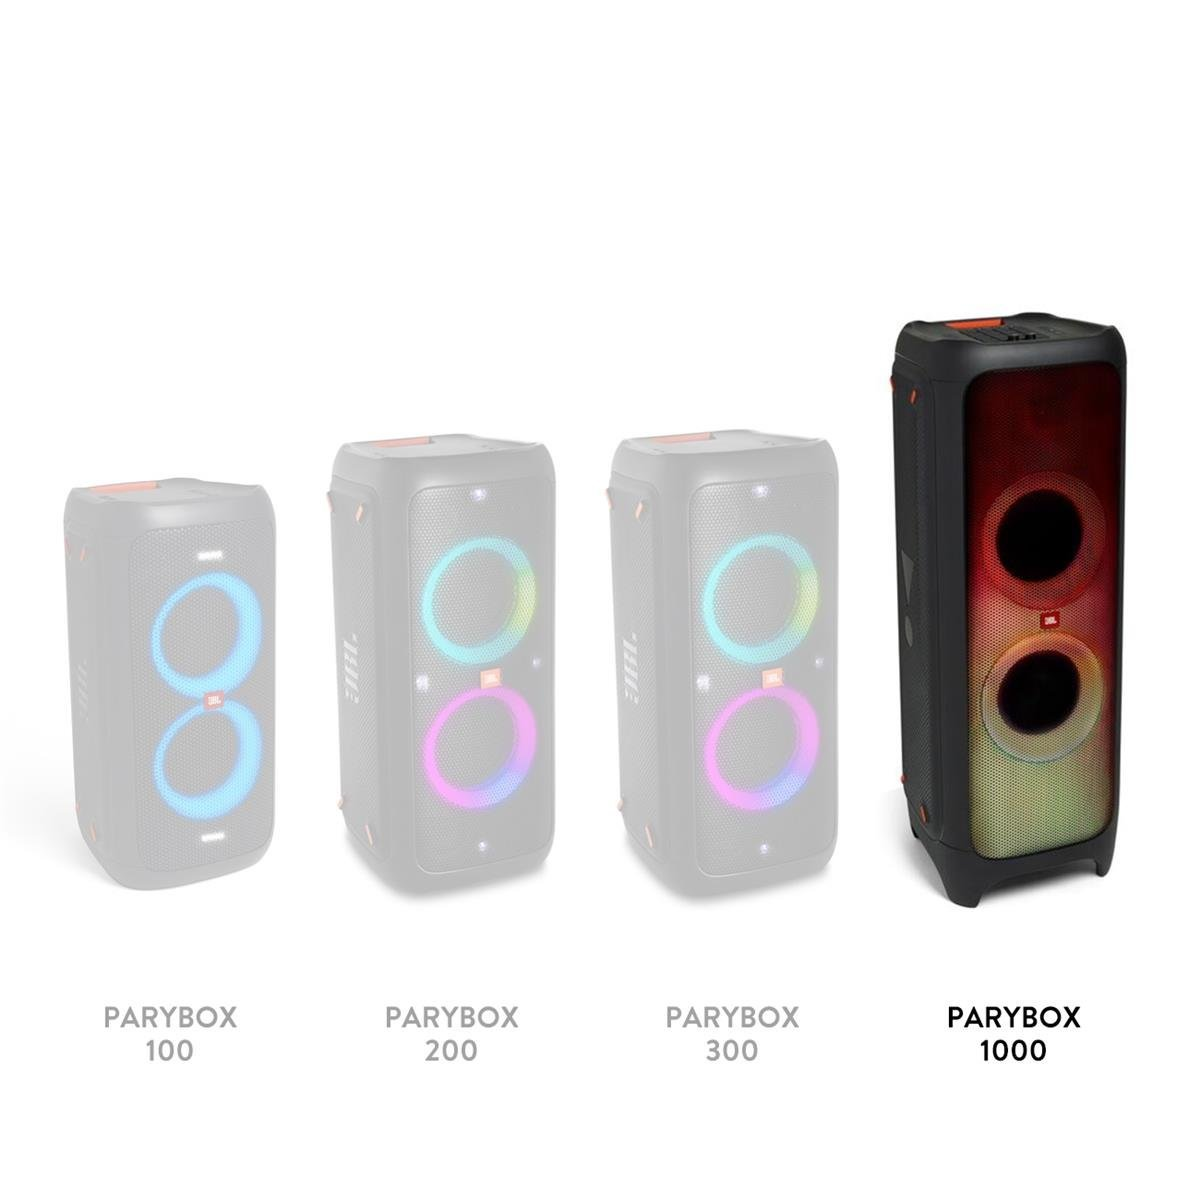 JBL PartyBox 1000 Powerful Bluetooth Party Speaker with Full